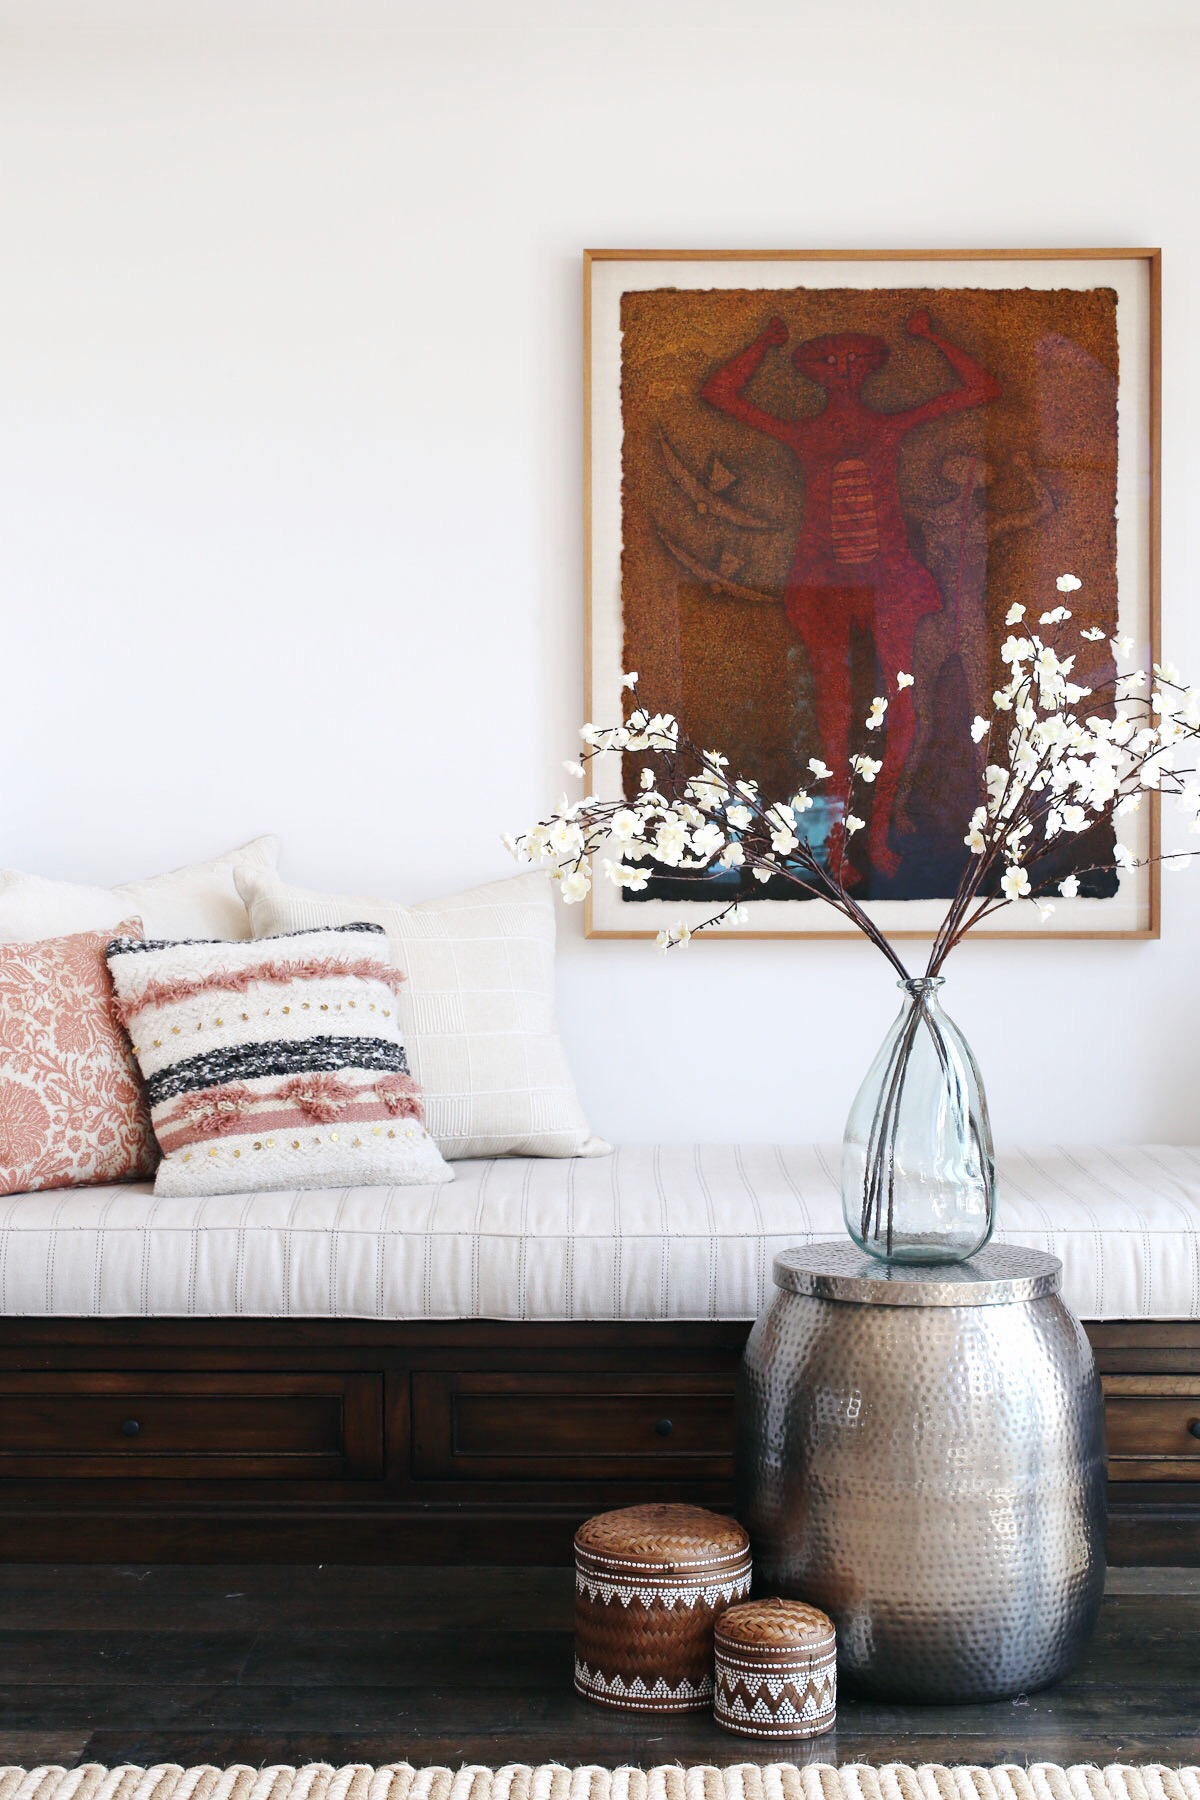 built-in seating with moroccan wedding blanket pillow via @citsage